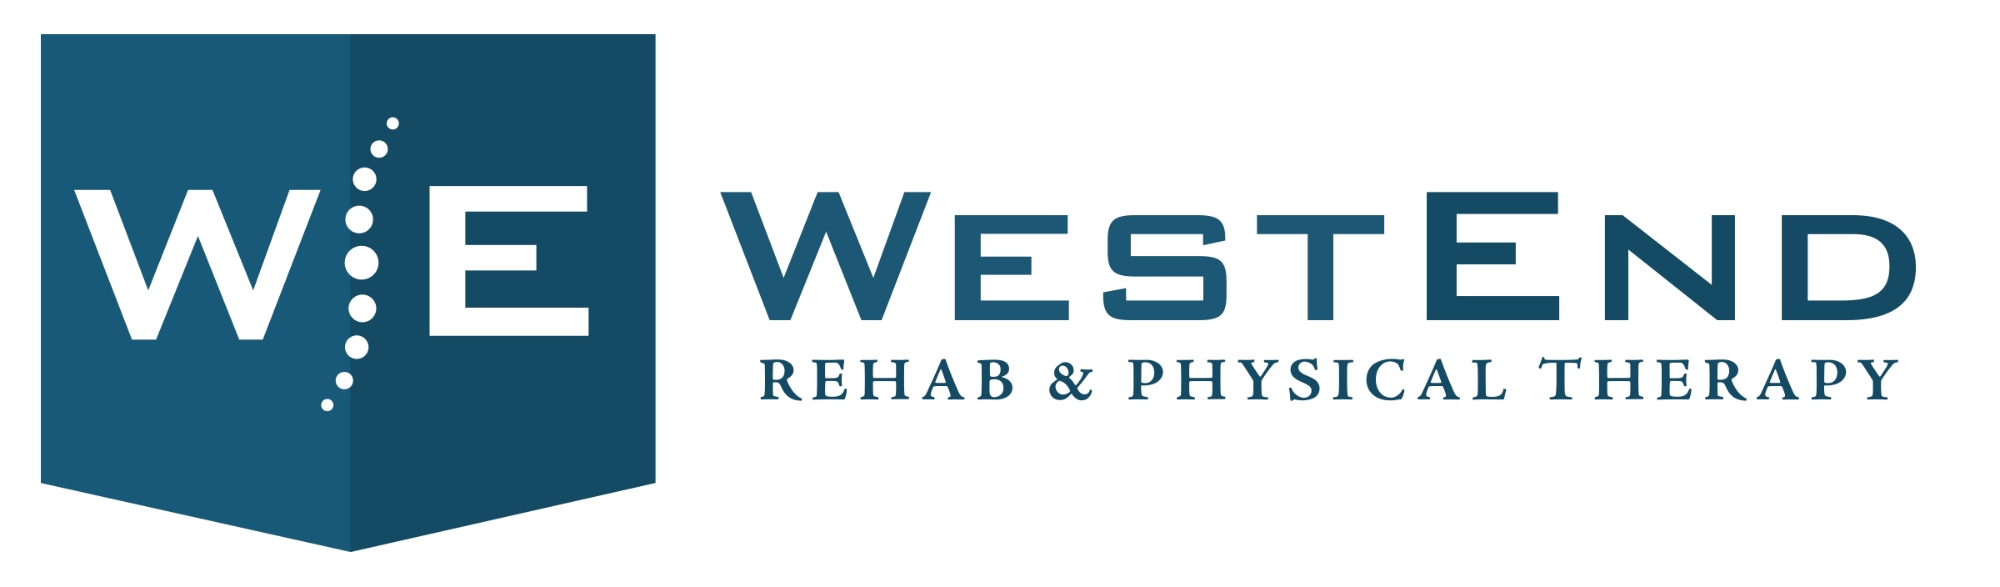 West End Rehab & Physical Therapy 3853 Bloor Street W. Etobicoke, Ontario     647-428-5852